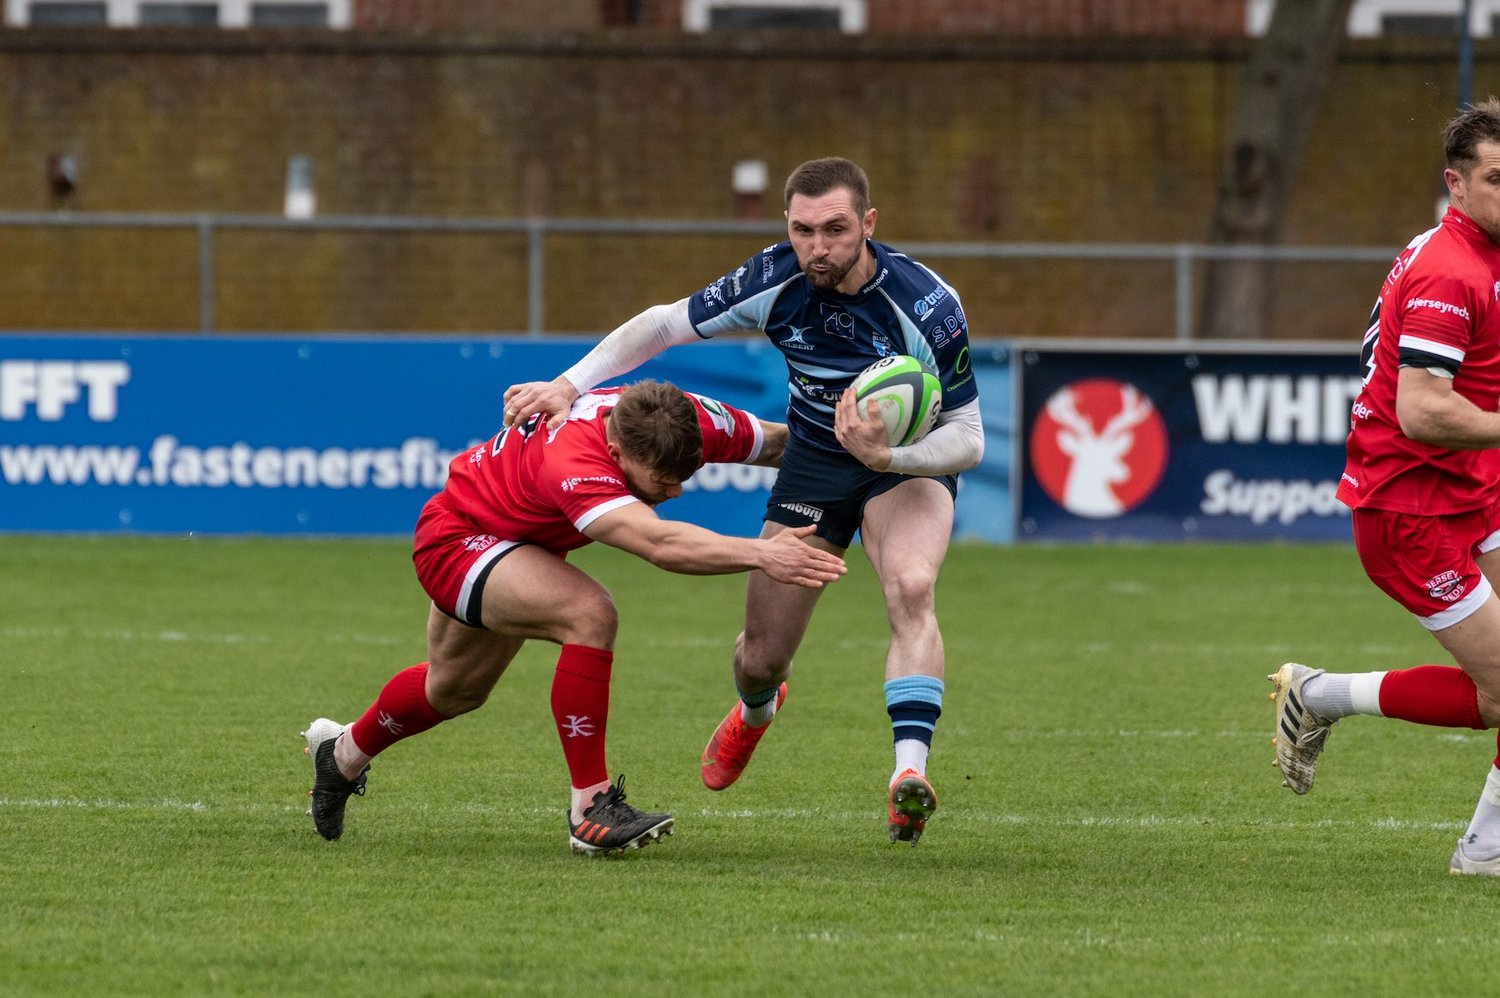 Bedford Blues' captain Rich Lane on the charge